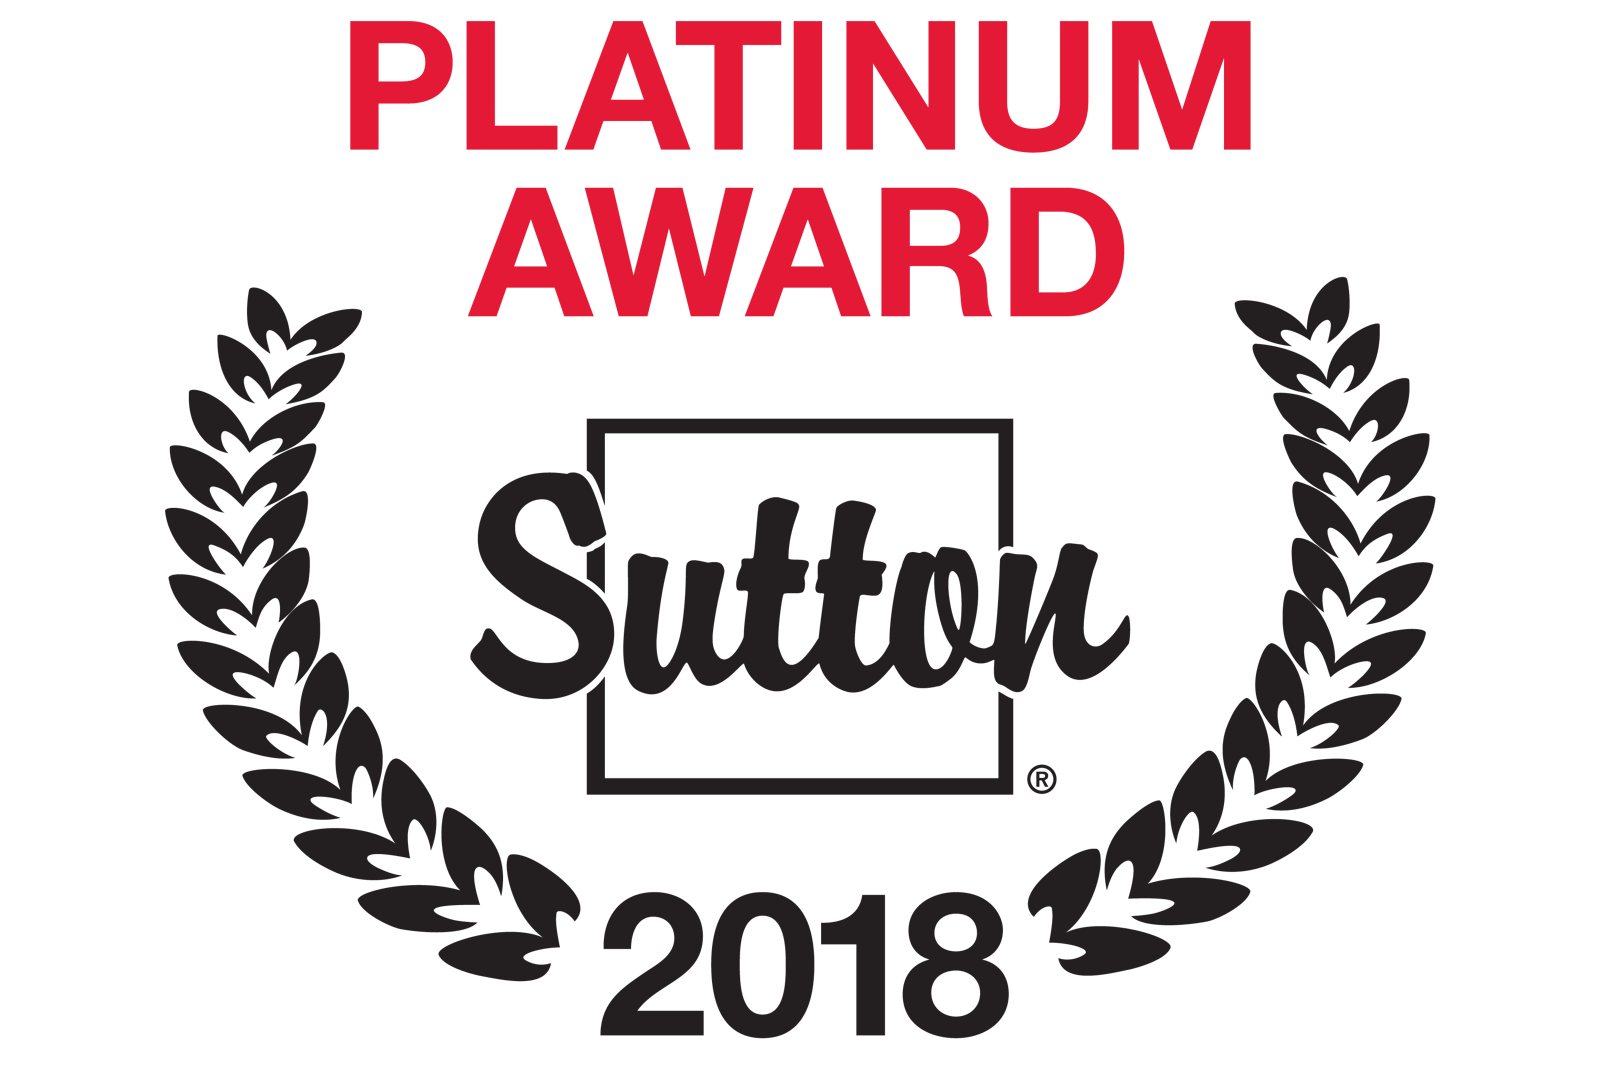 Platinum Award Sutton 2018